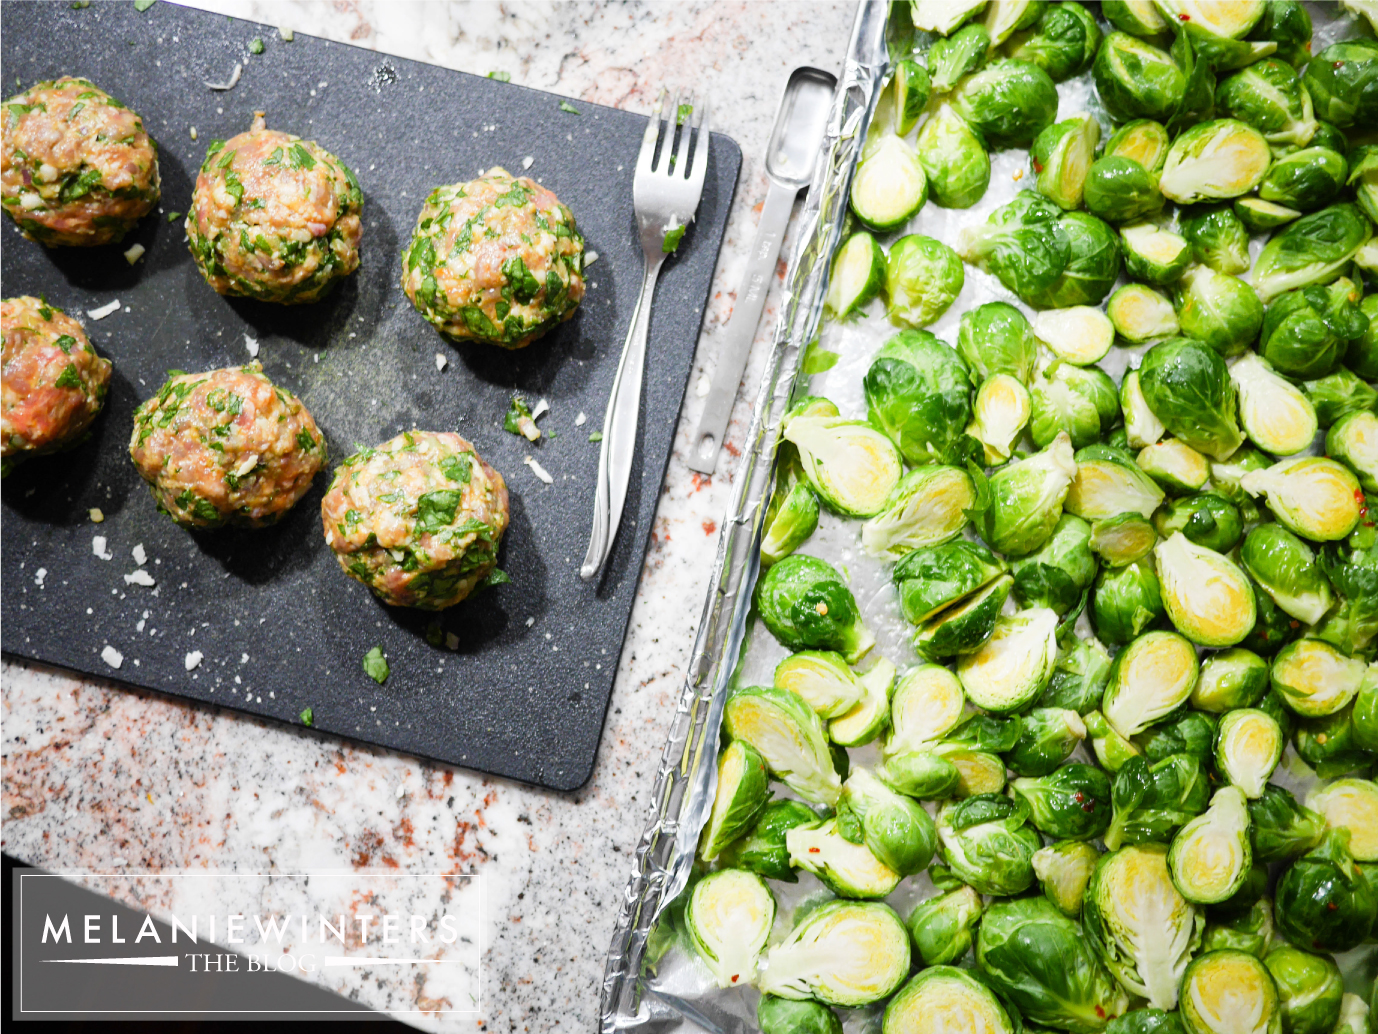 Great-for-you Brussels sprouts are a perfect side for these flavorful gluten free meatballs.